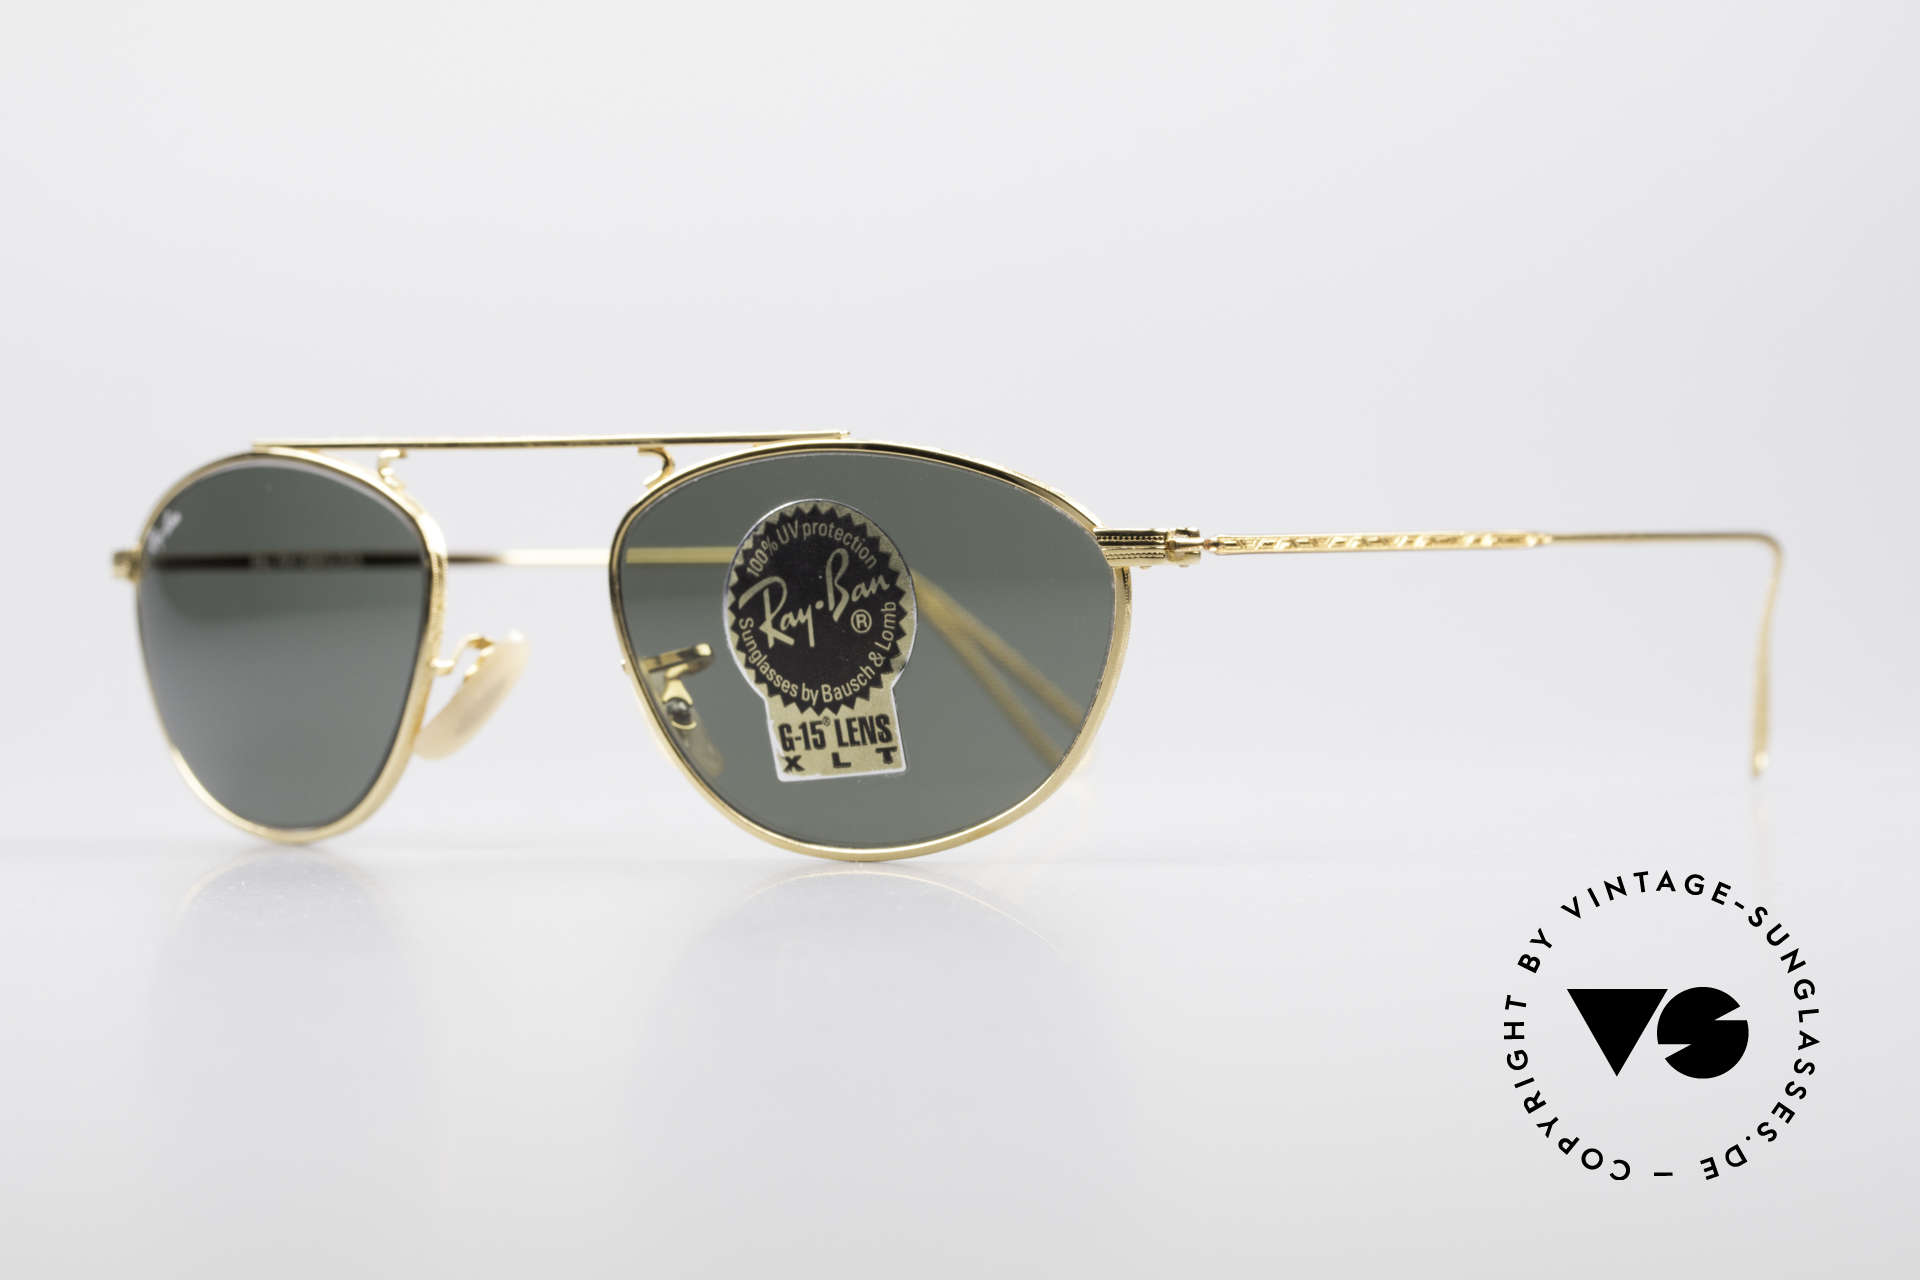 Ray Ban Modified Aviator Old USA Ray-Ban Sunglasses, legendary B&L mineral lenses (100% UV protection), Made for Men and Women